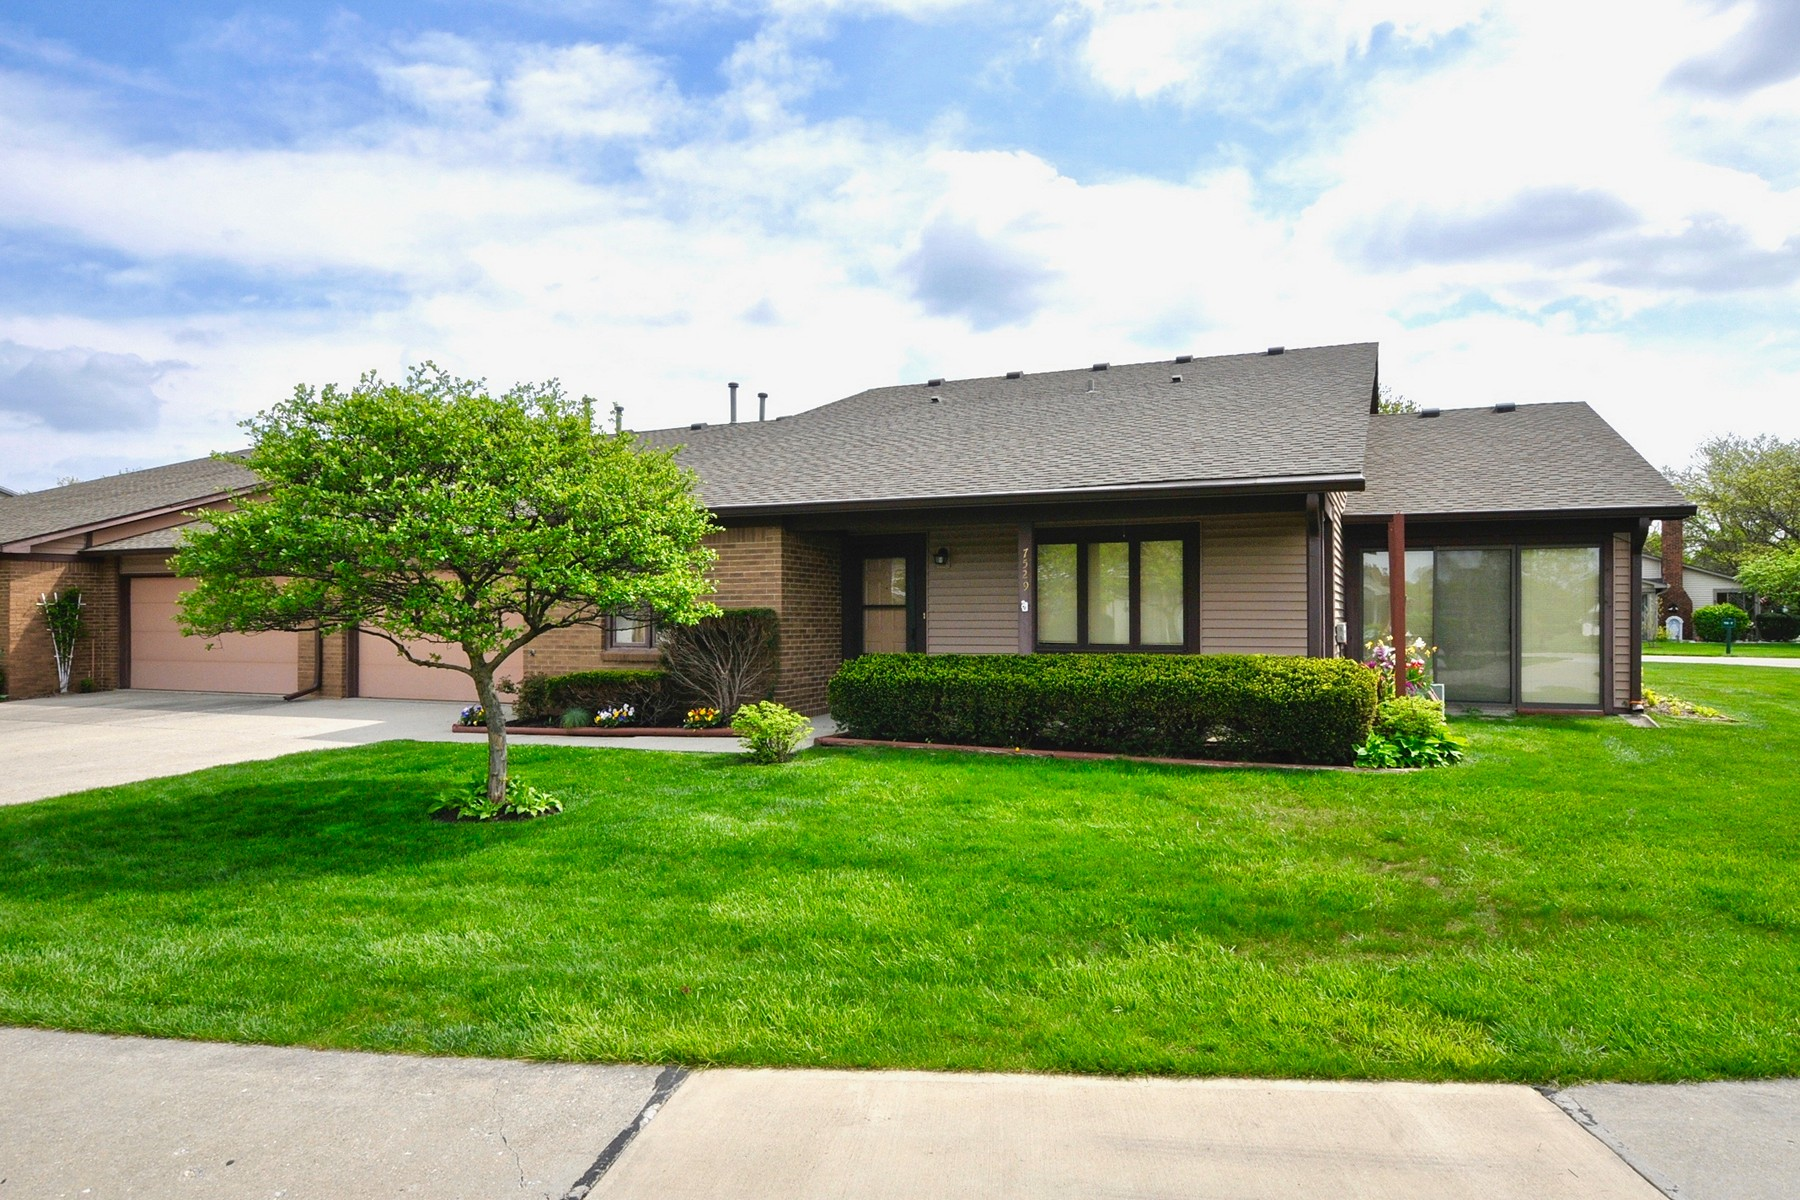 Condominium for Sale at Location, Convenience & Style 7529 Farm View Circle Indianapolis, Indiana 46256 United States